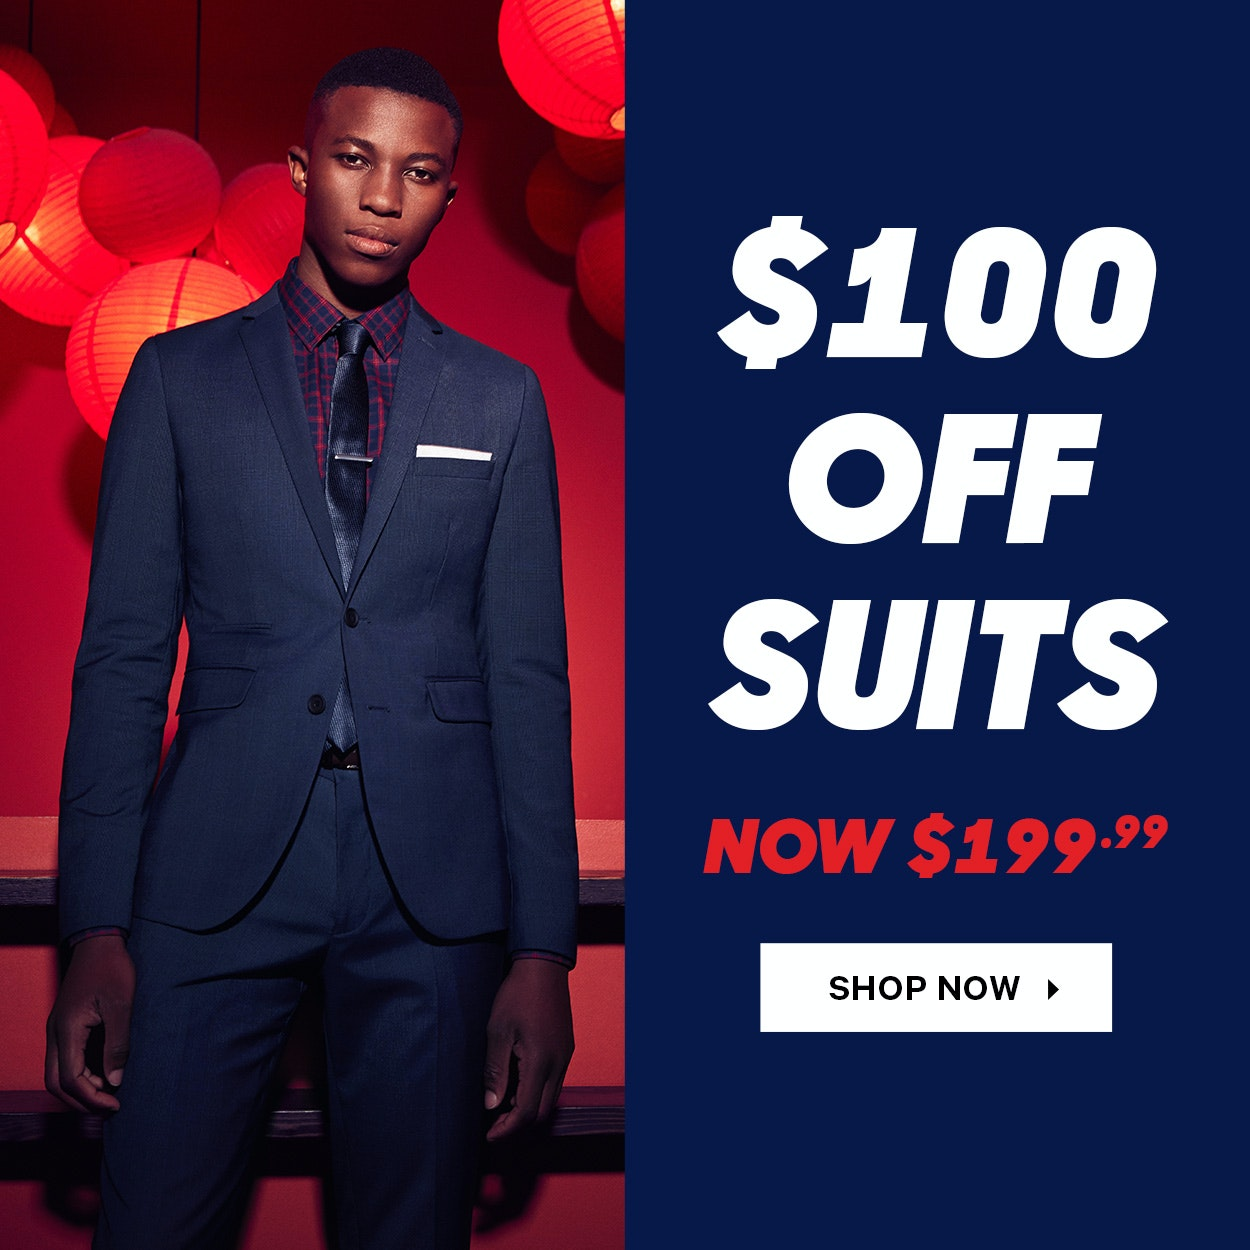 Save $100 Off Suiting at yd.